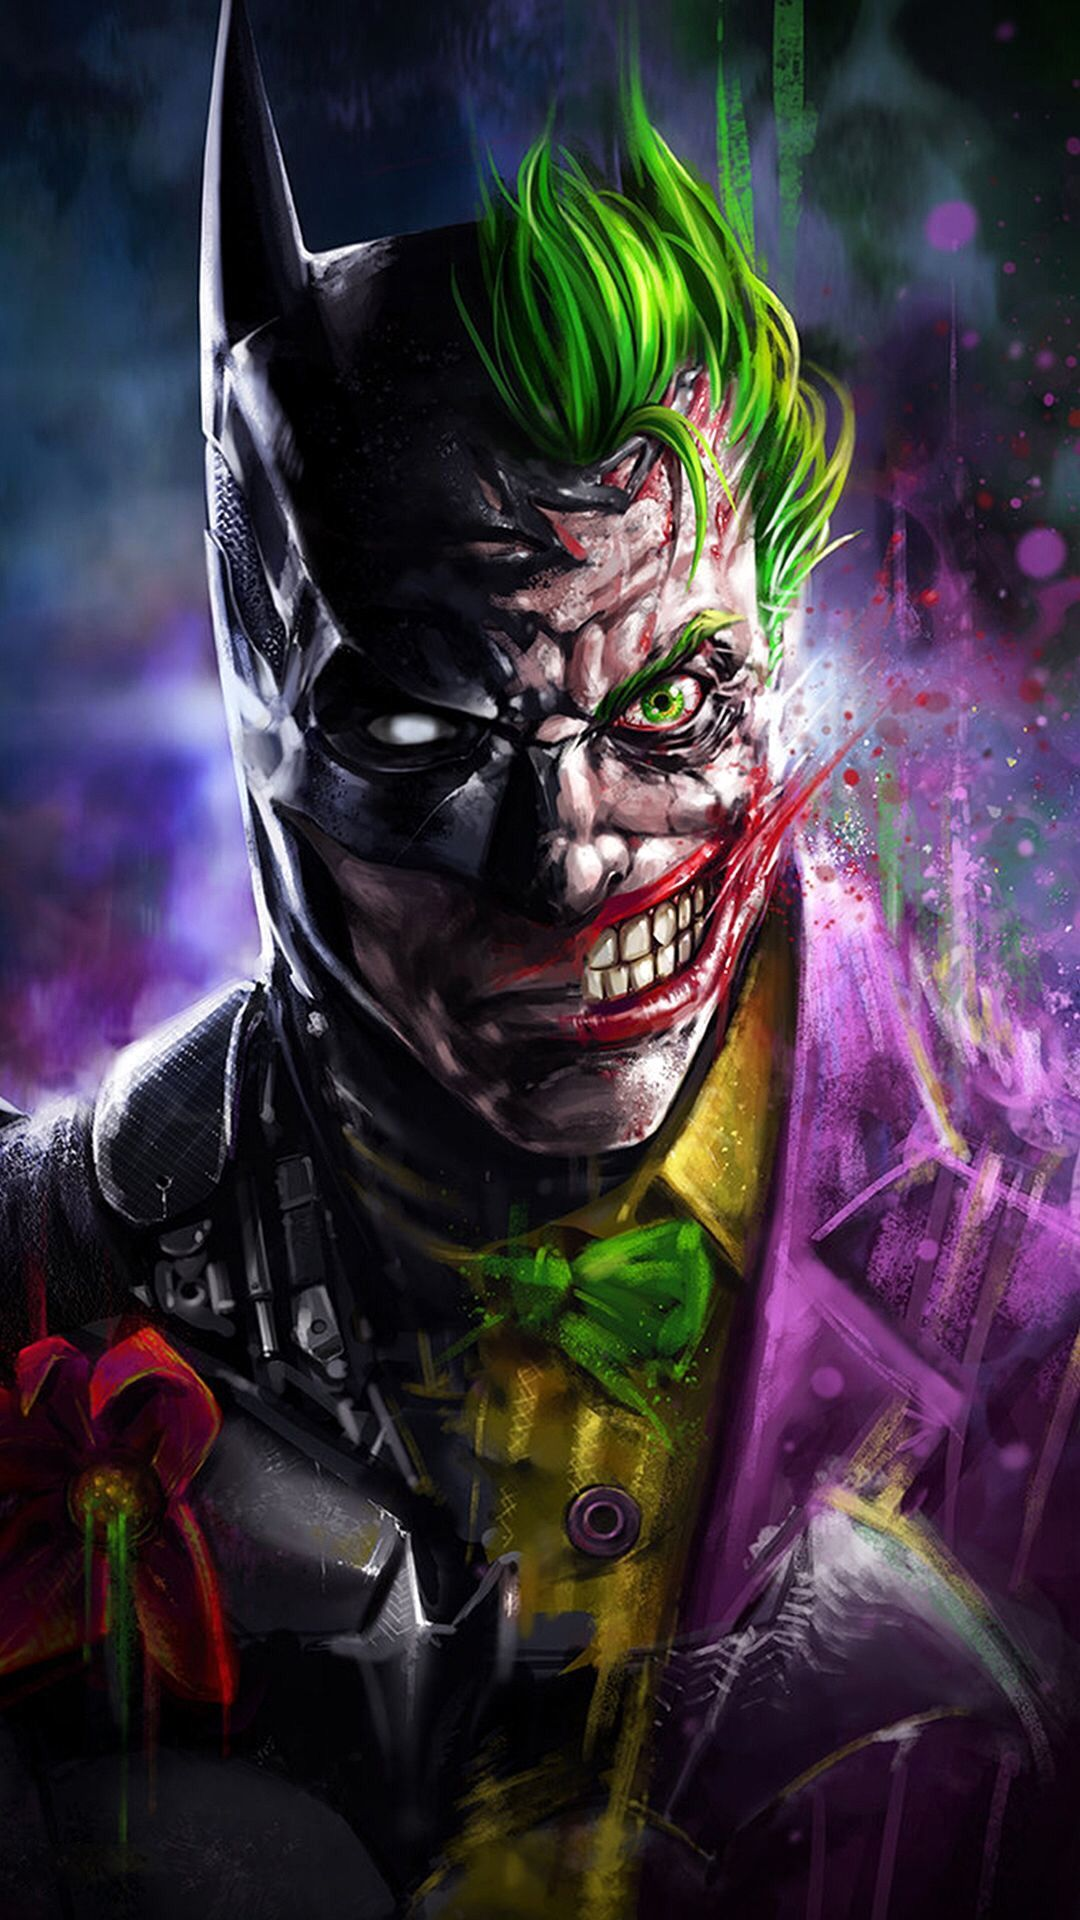 Joker Wallpaper Awesome Wallpapers Two Faces With Batman Merge Together Joker Wallpapers Batman Joker Wallpaper Joker Art